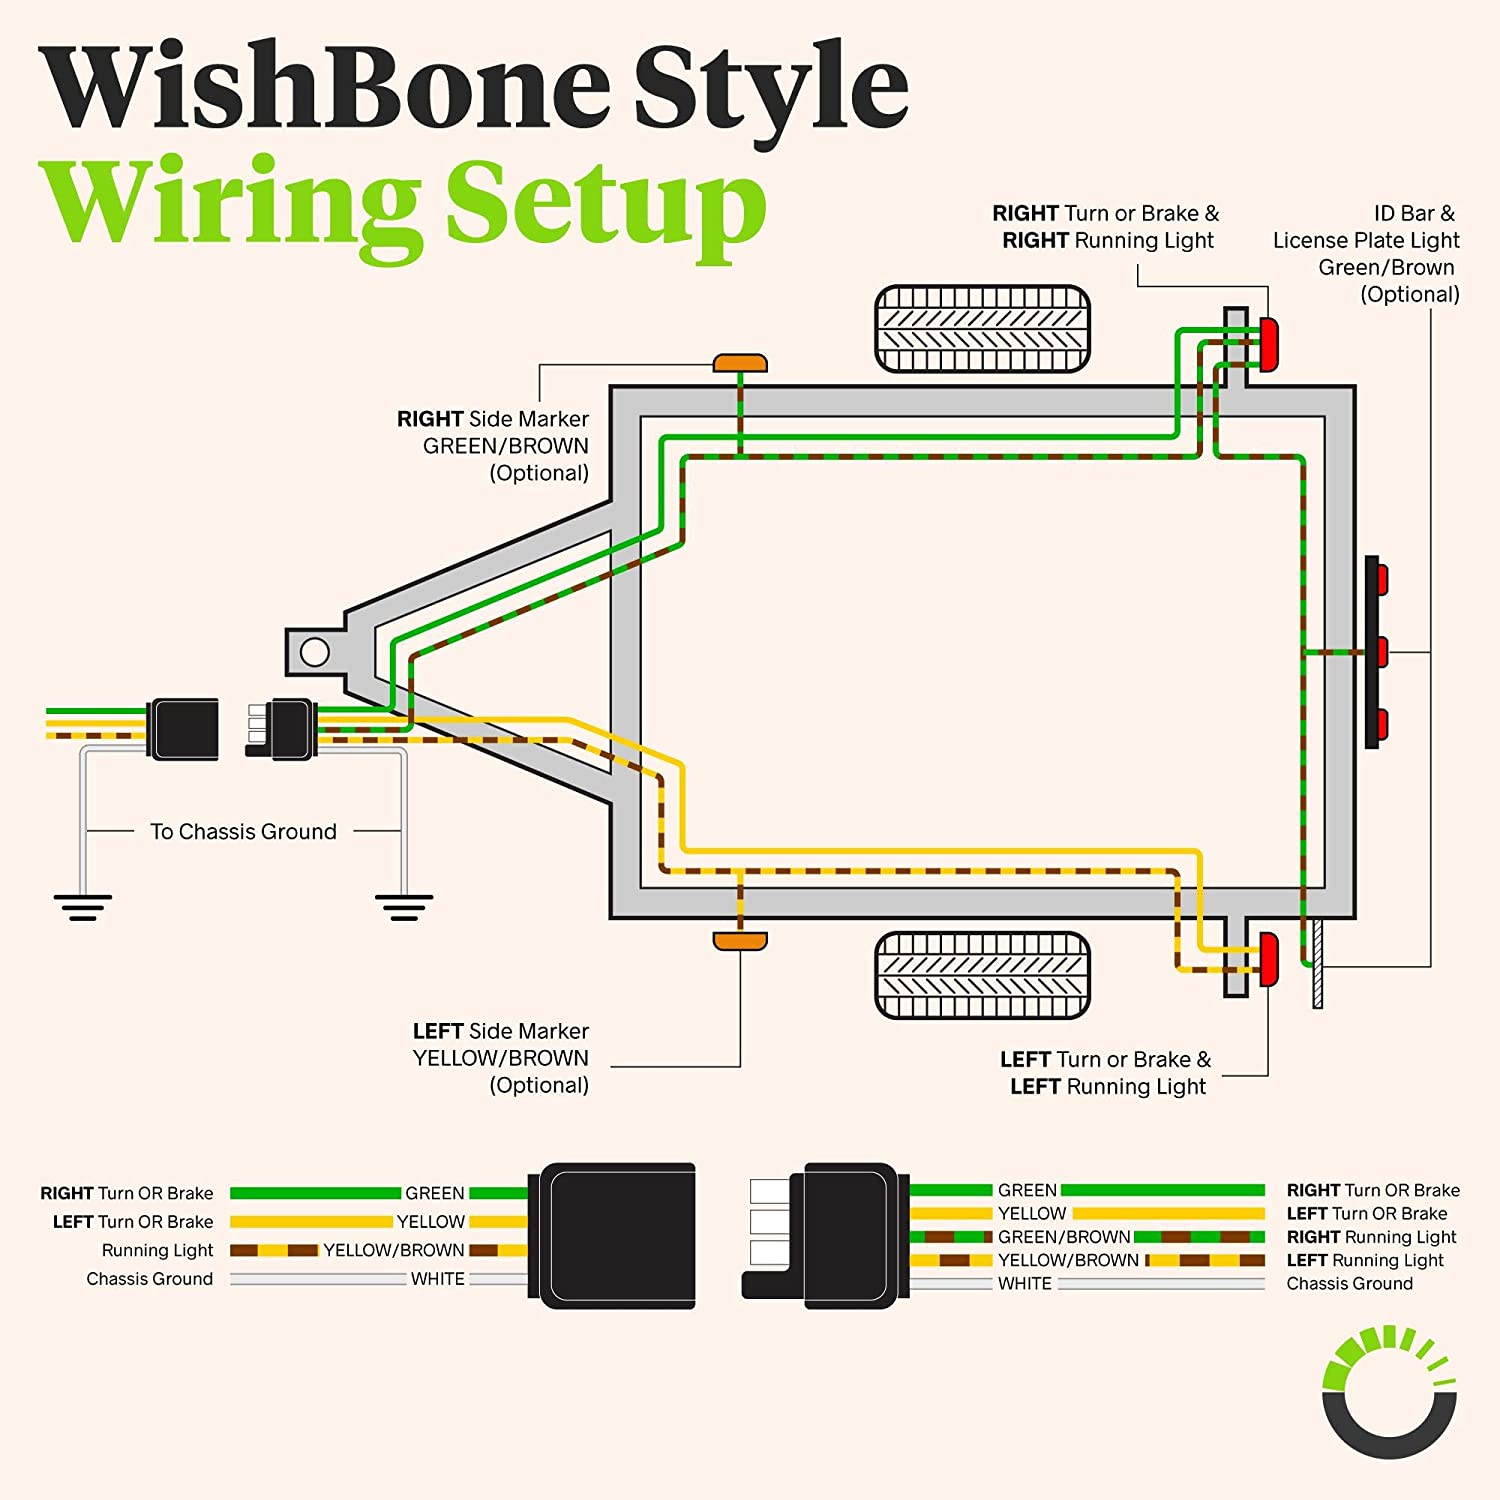 Amazon.com: 4 Pin Flat Trailer Wiring Harness Kit [Wishbone-Style] [SAE  J1128 Rated] [25' Male & 4' Female] [18 AWG Color Coded Wires] 4 Way Flat 5 Wire  Harness For Utility Boat TrailerAmazon.com